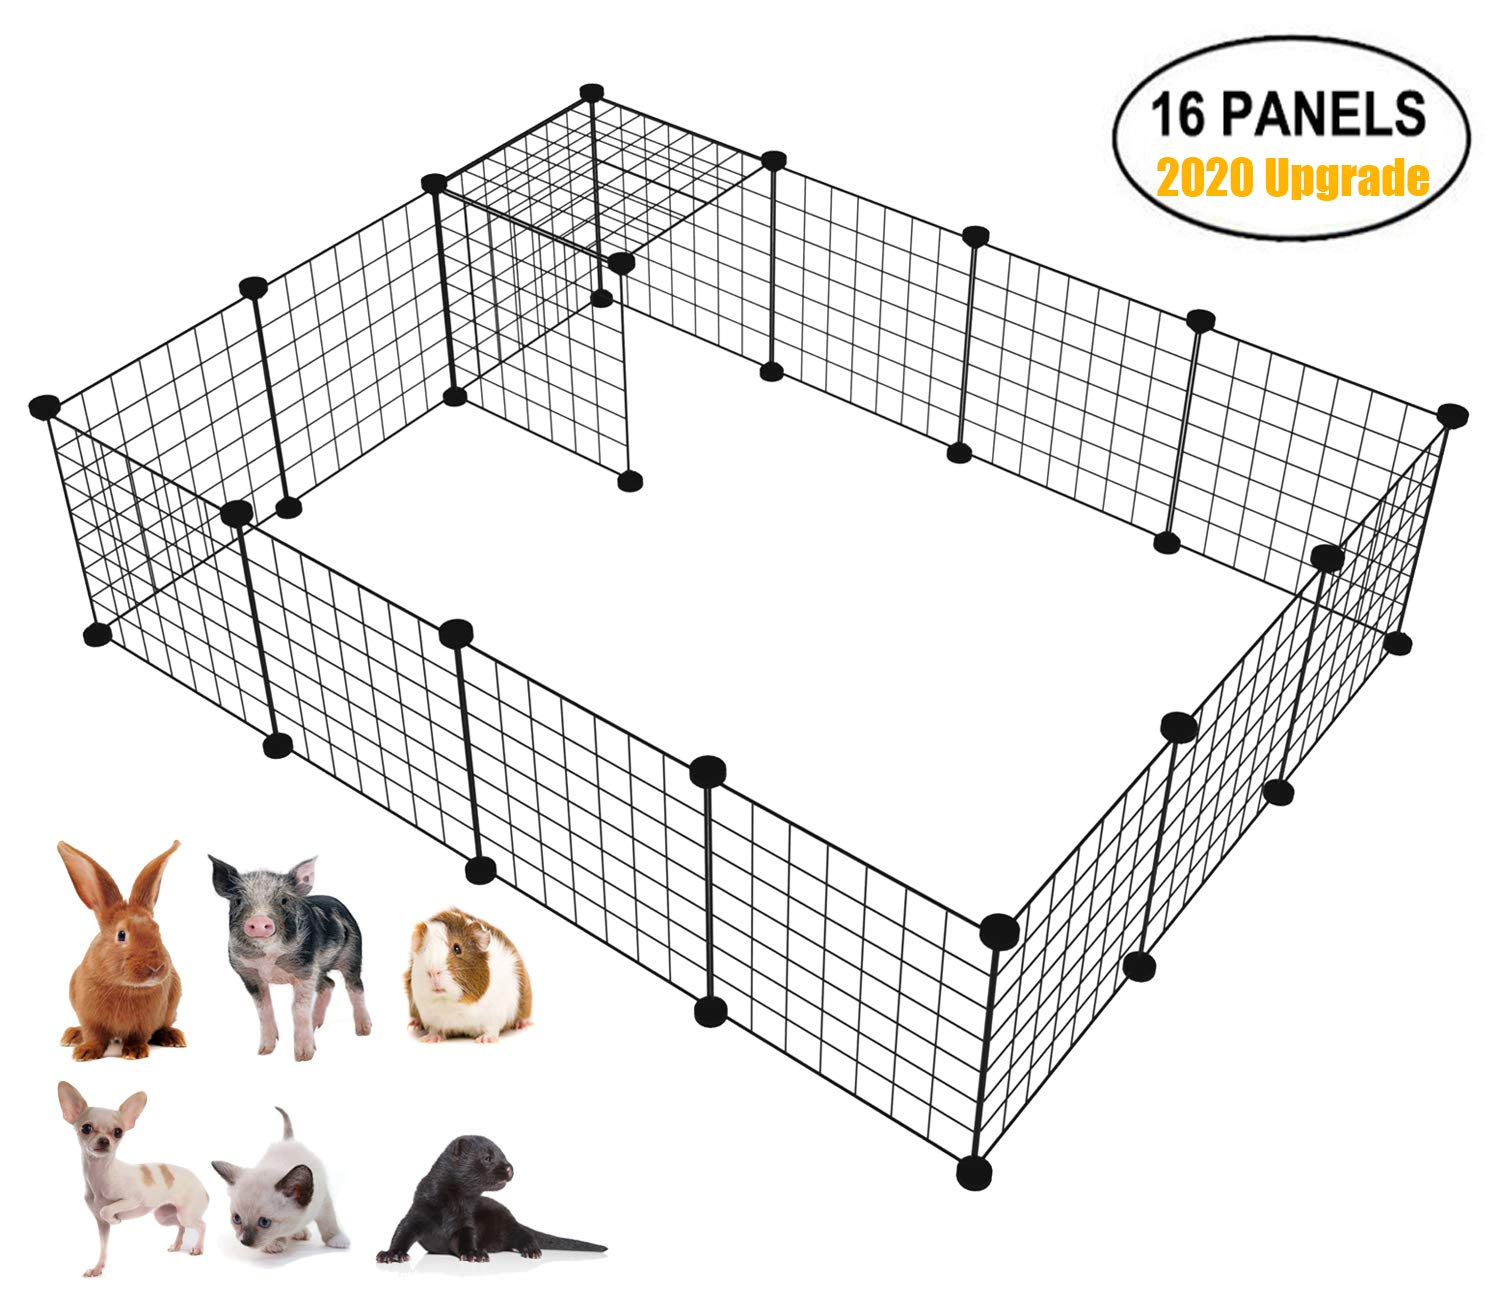 LANGXUN 16pcs Metal Wire Storage Cubes Organizer, DIY Small Animal Cage for Rabbit, Guinea Pigs, Puppy | Pet Products Portable Metal Wire Yard Fence(14'' H) by LANGXUN